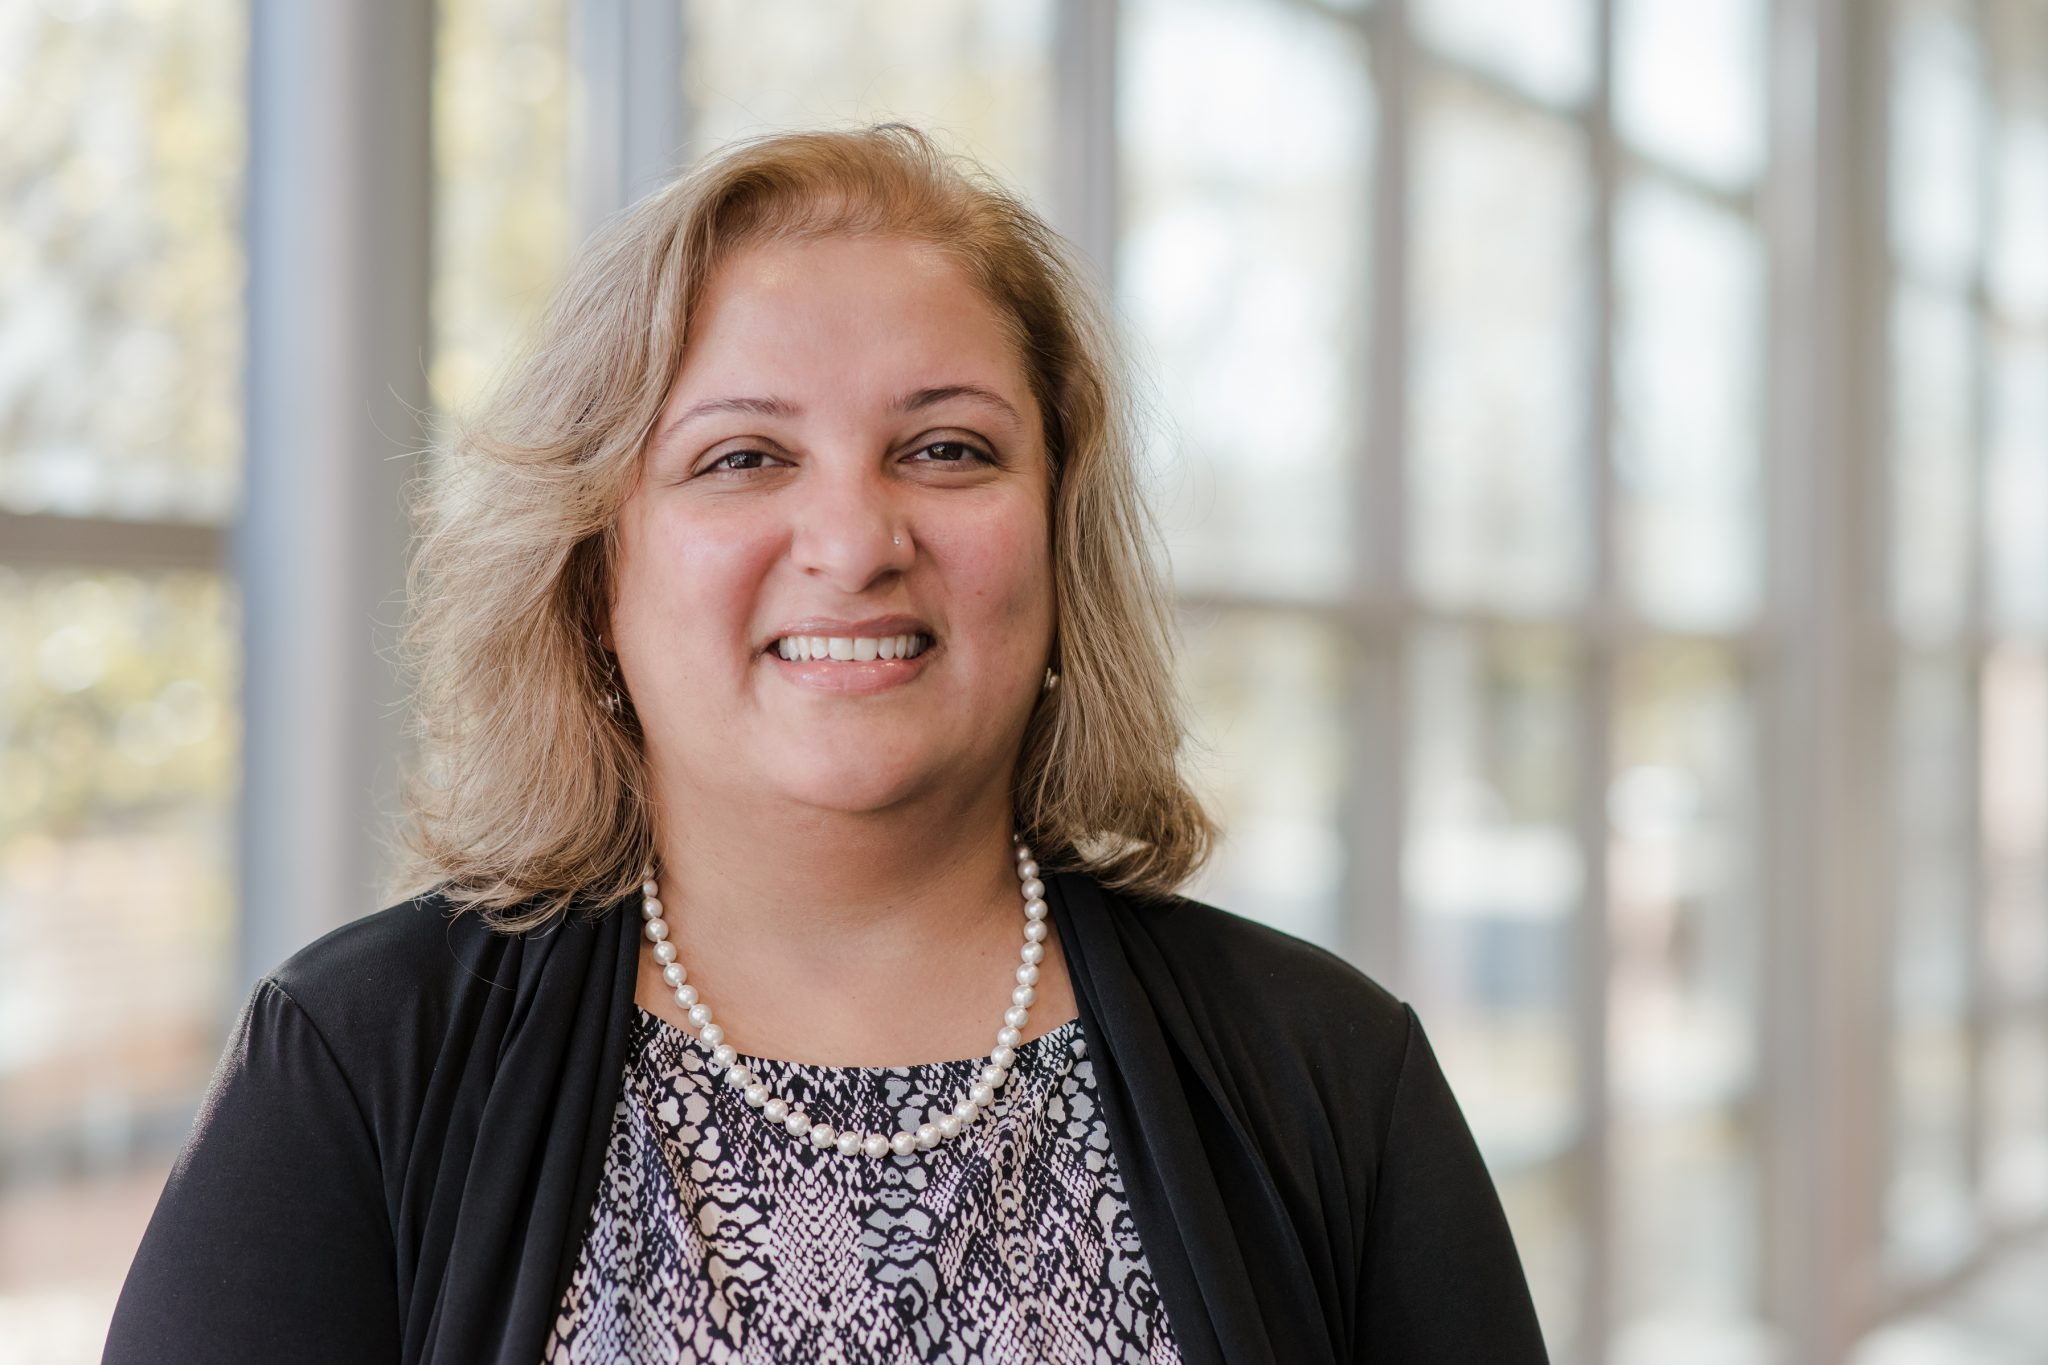 Prof. Janeja Featured in The Washington Post about The Future of College